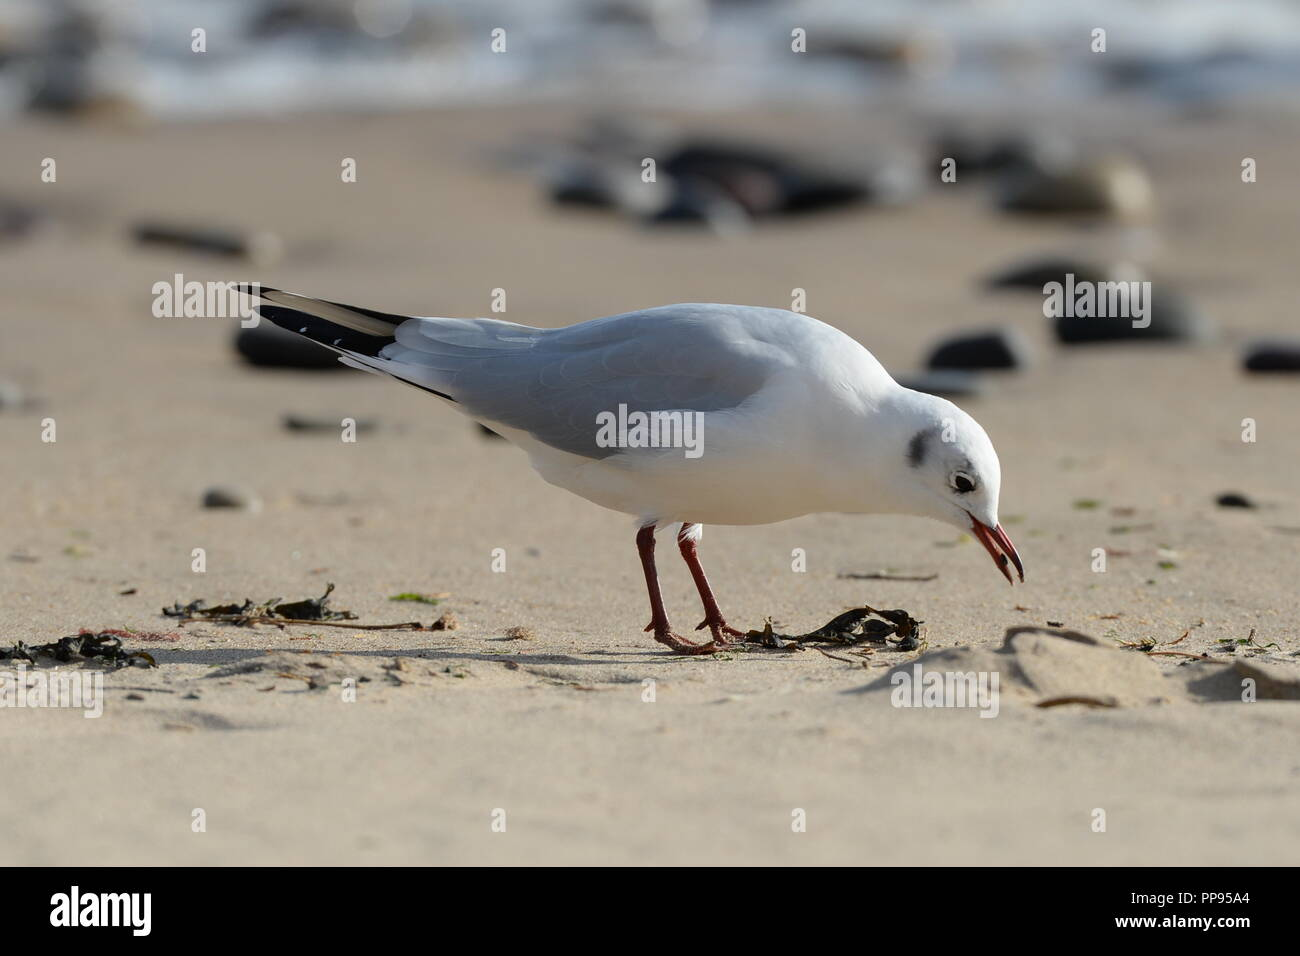 Gull feeding at high tide line on sandy beach with pebbles and surf in background one of a sequence of 4. Stock Photo